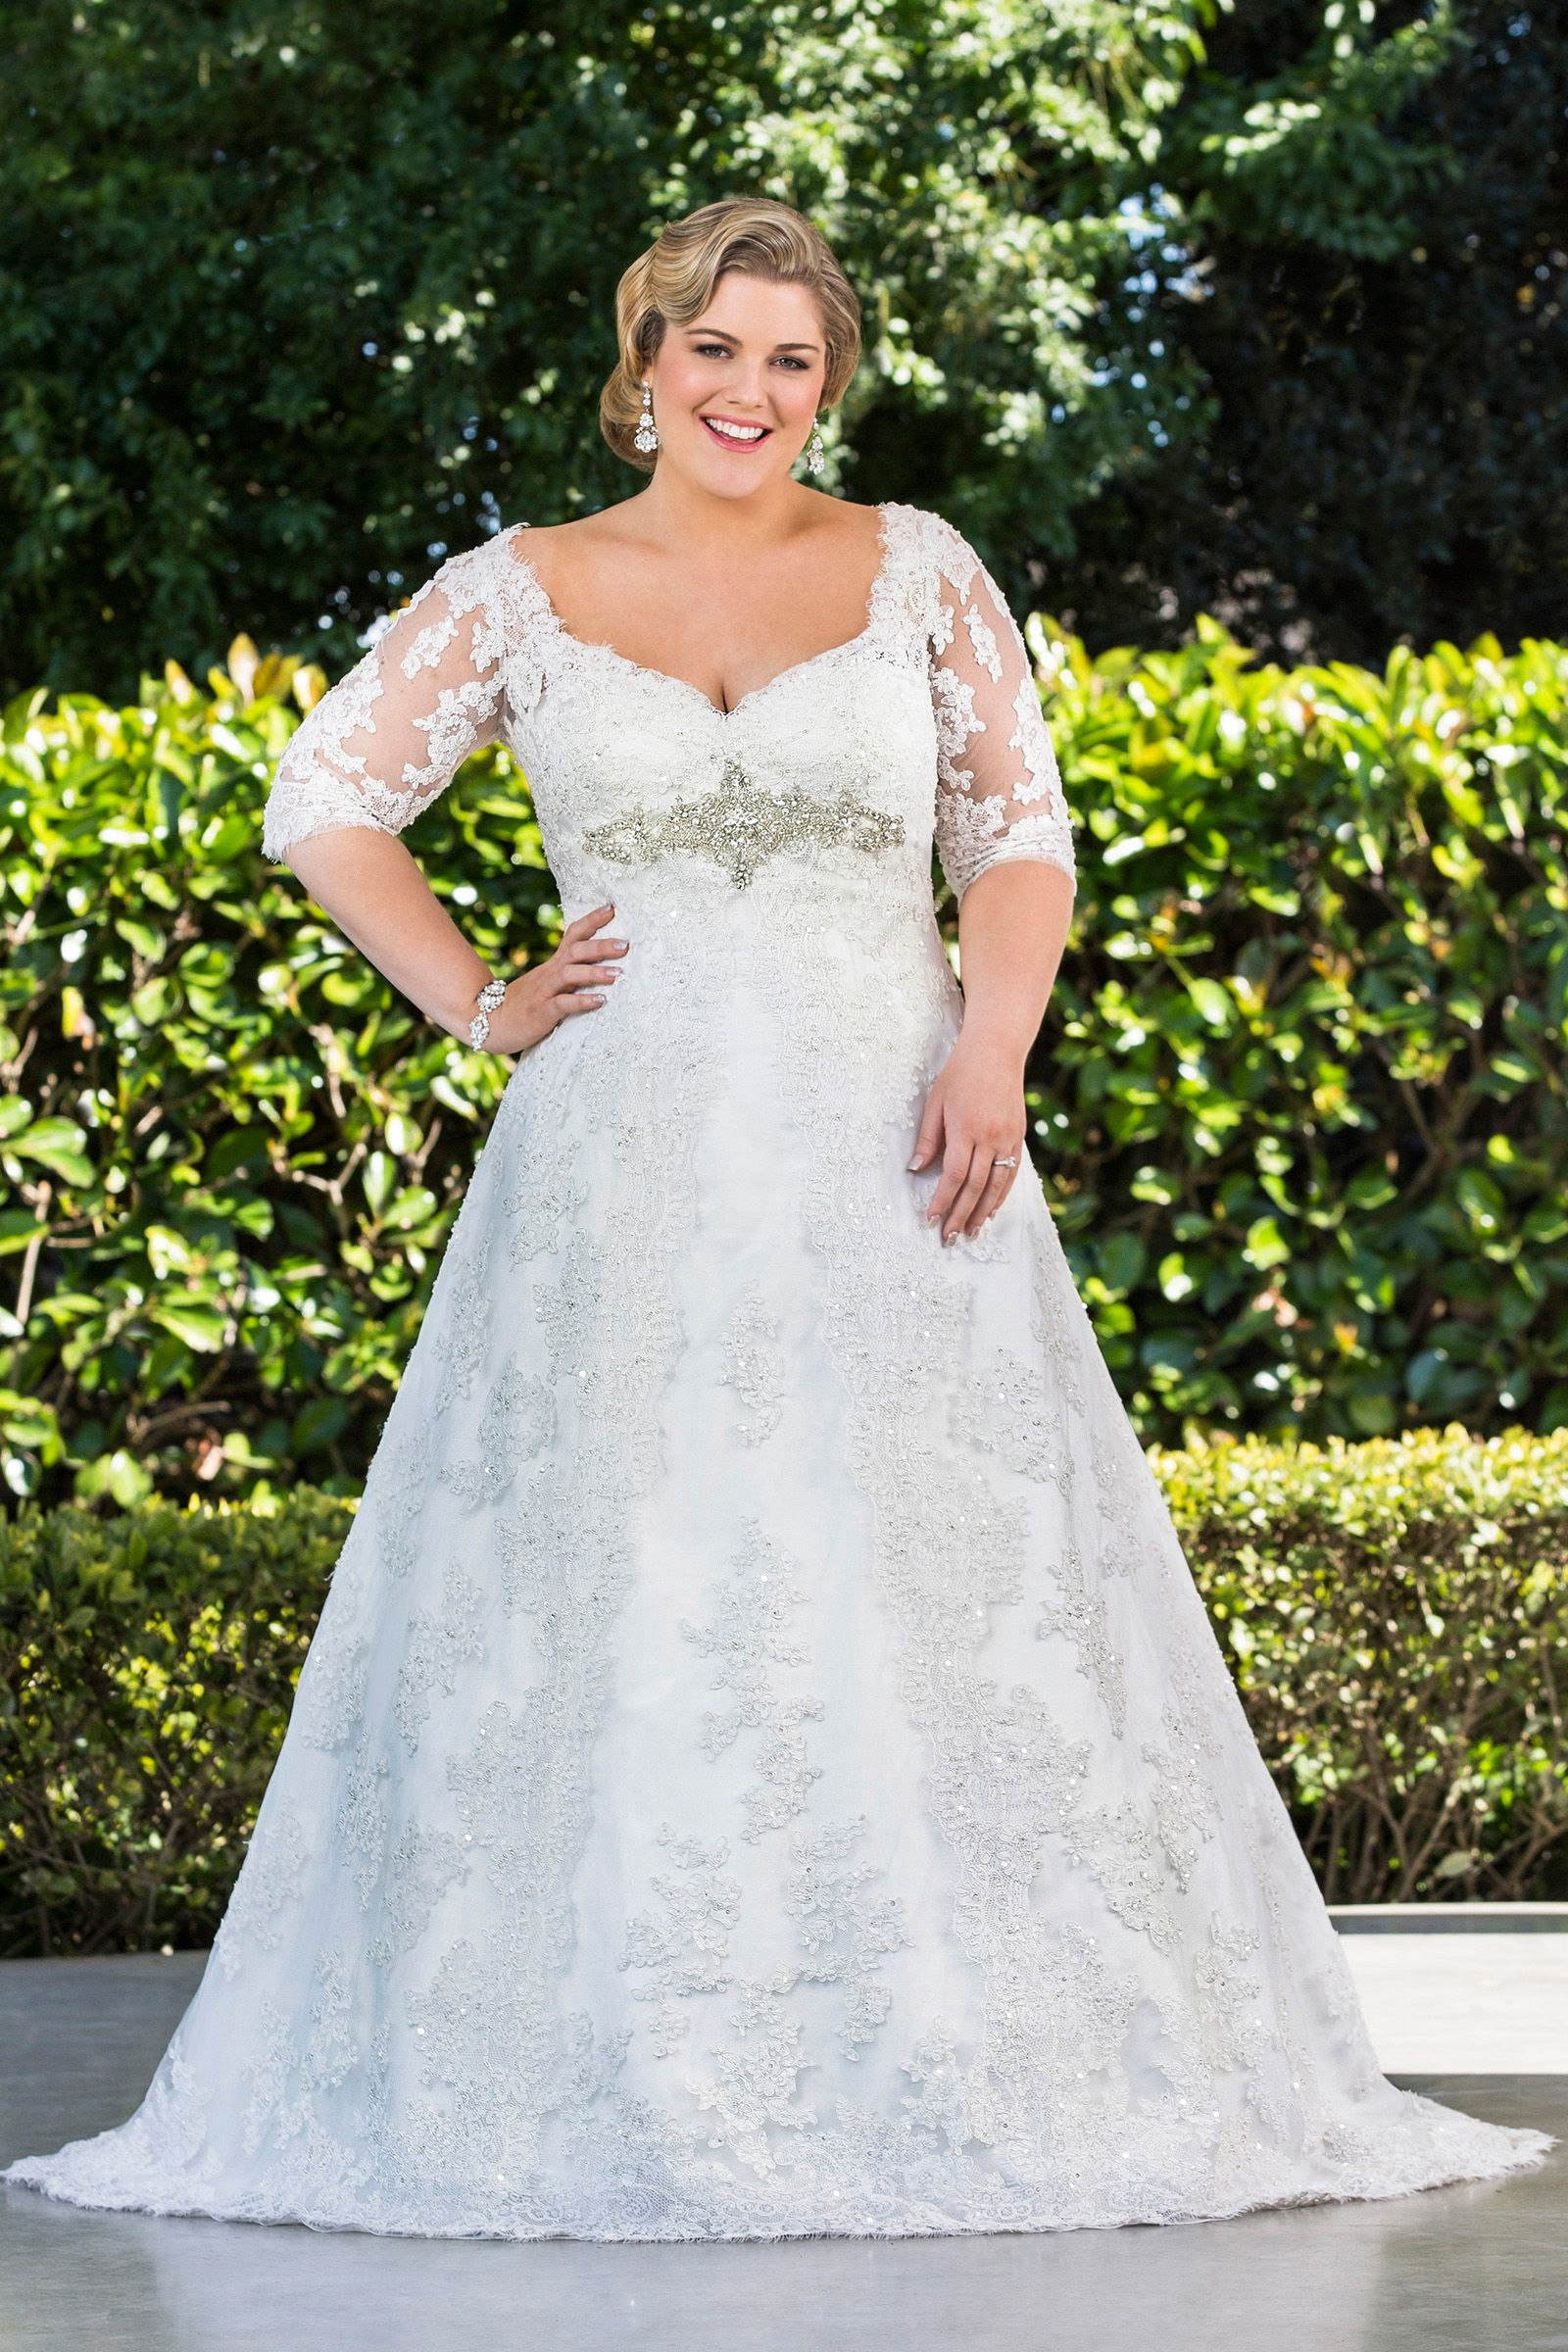 Pin By Monica Cooper On Laura Damian 2015 Plus Size Wedding Dresses With Sleeves Plus Size Wedding Gowns Wedding Dress Styles [ 2400 x 1600 Pixel ]